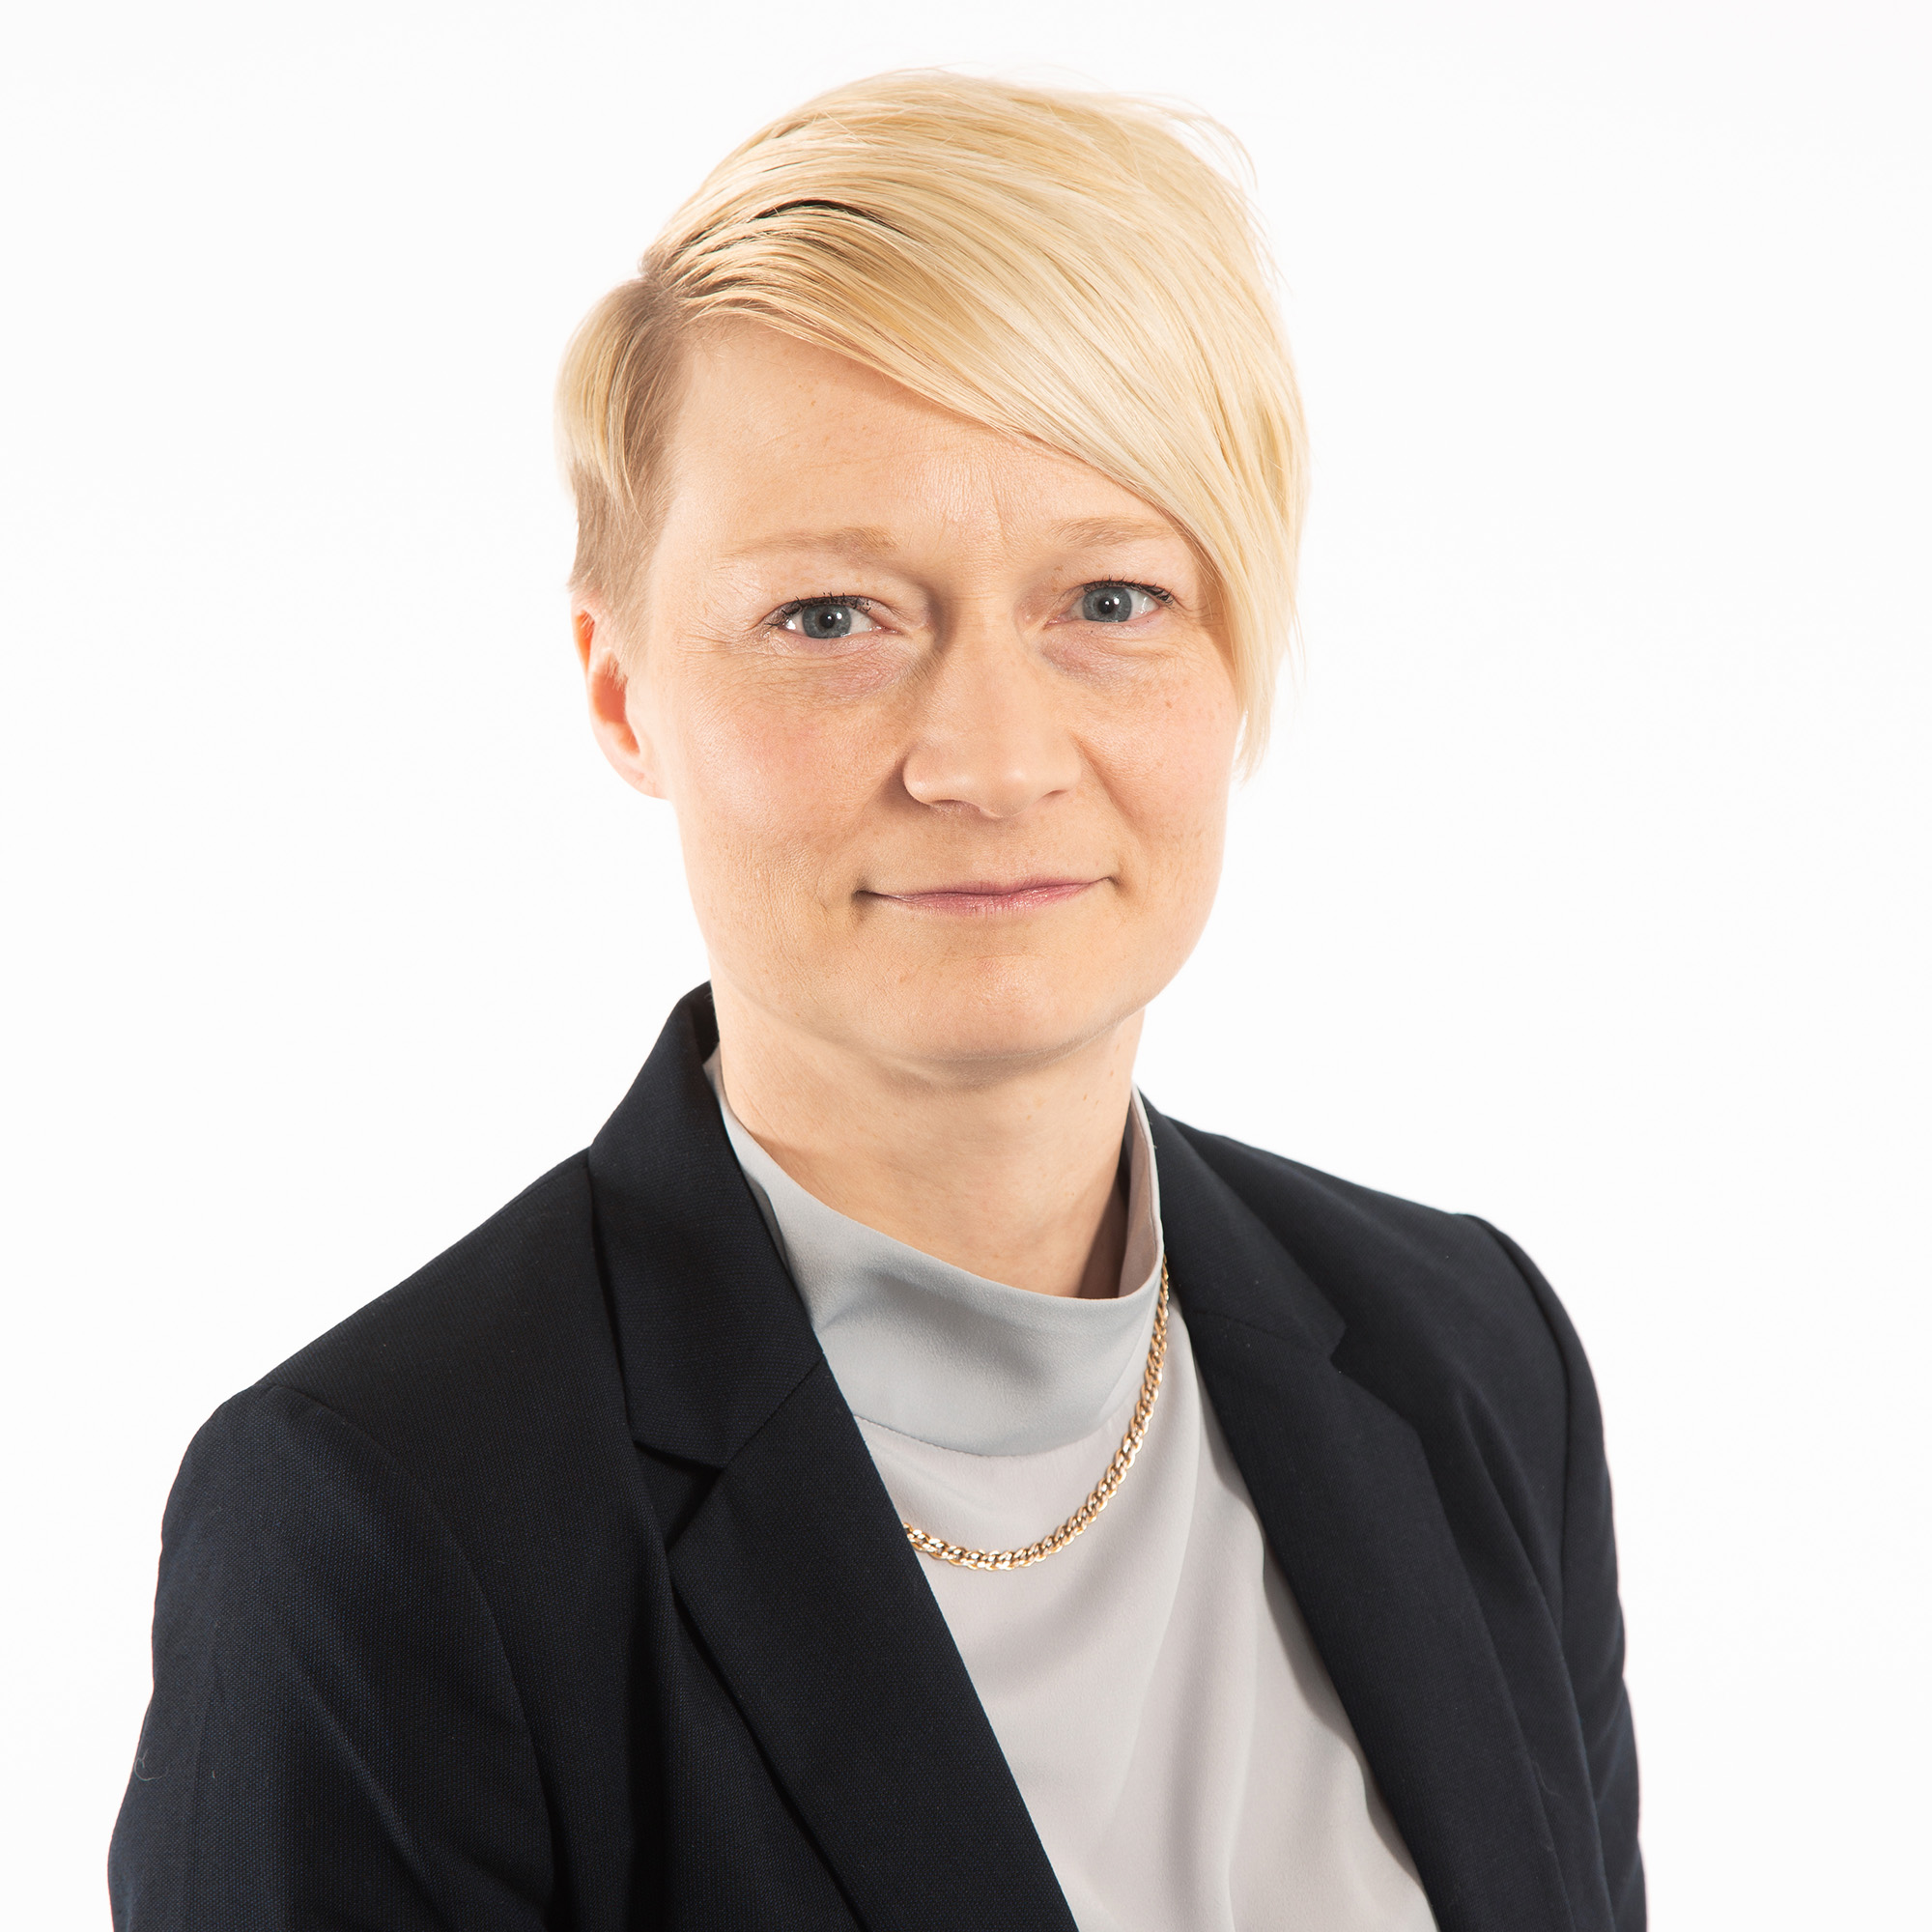 Jaana Mustonen works as a customership specialist in the finance sector